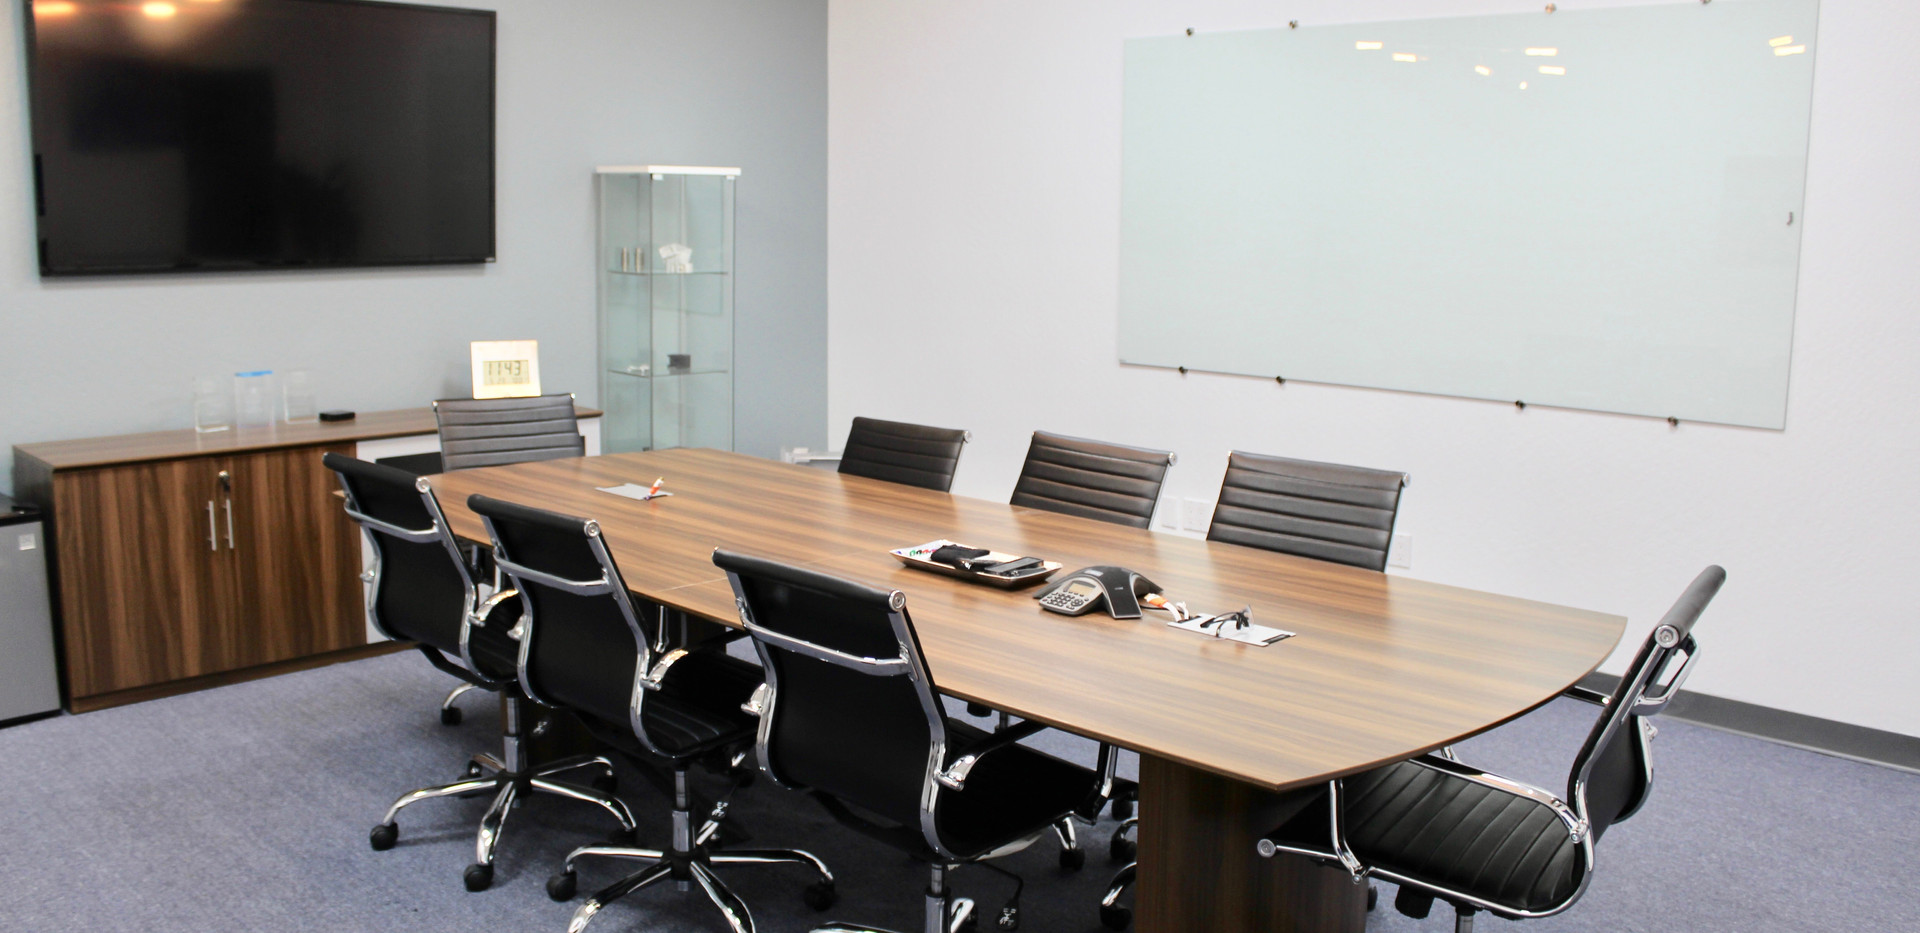 Conference Room Building 1_3